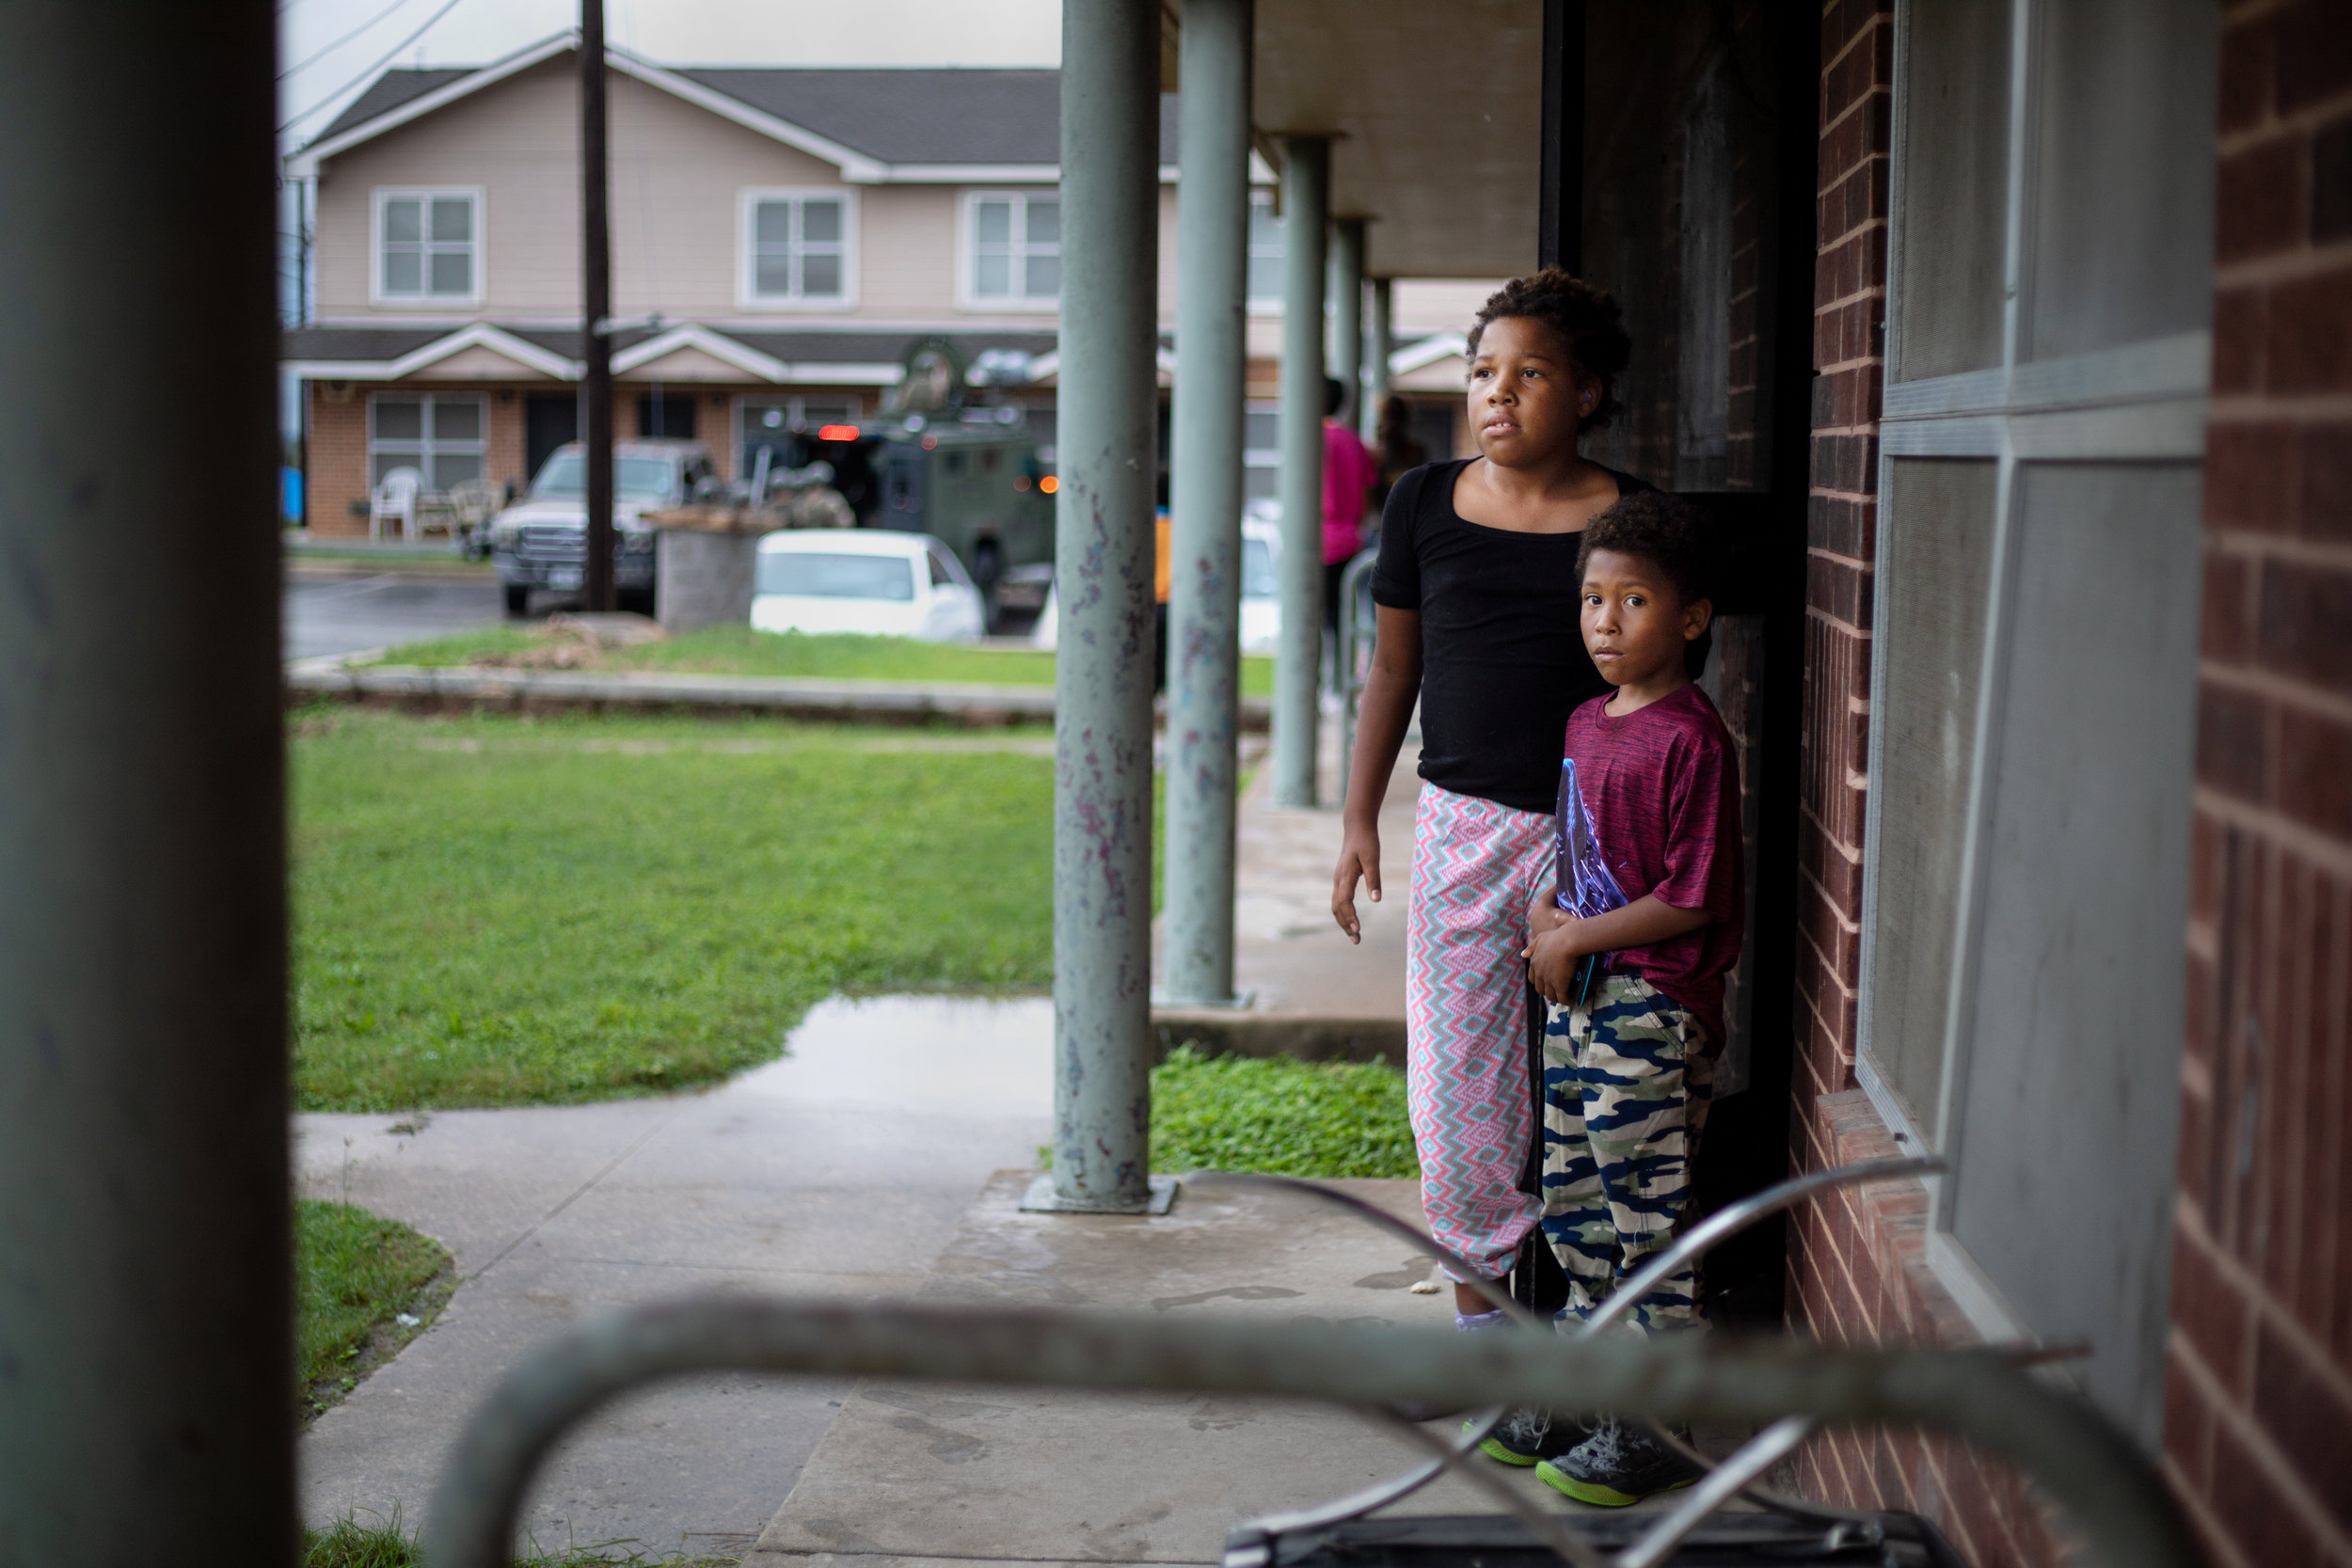 Trevina Tubbs-Tubbs, 9, and her brother Frederick Moreno -Tubbs III, 6, watch an Austin Police Department SWAT team response to Booker T. Washington Terrace apartments on Oct. 19, 2018.